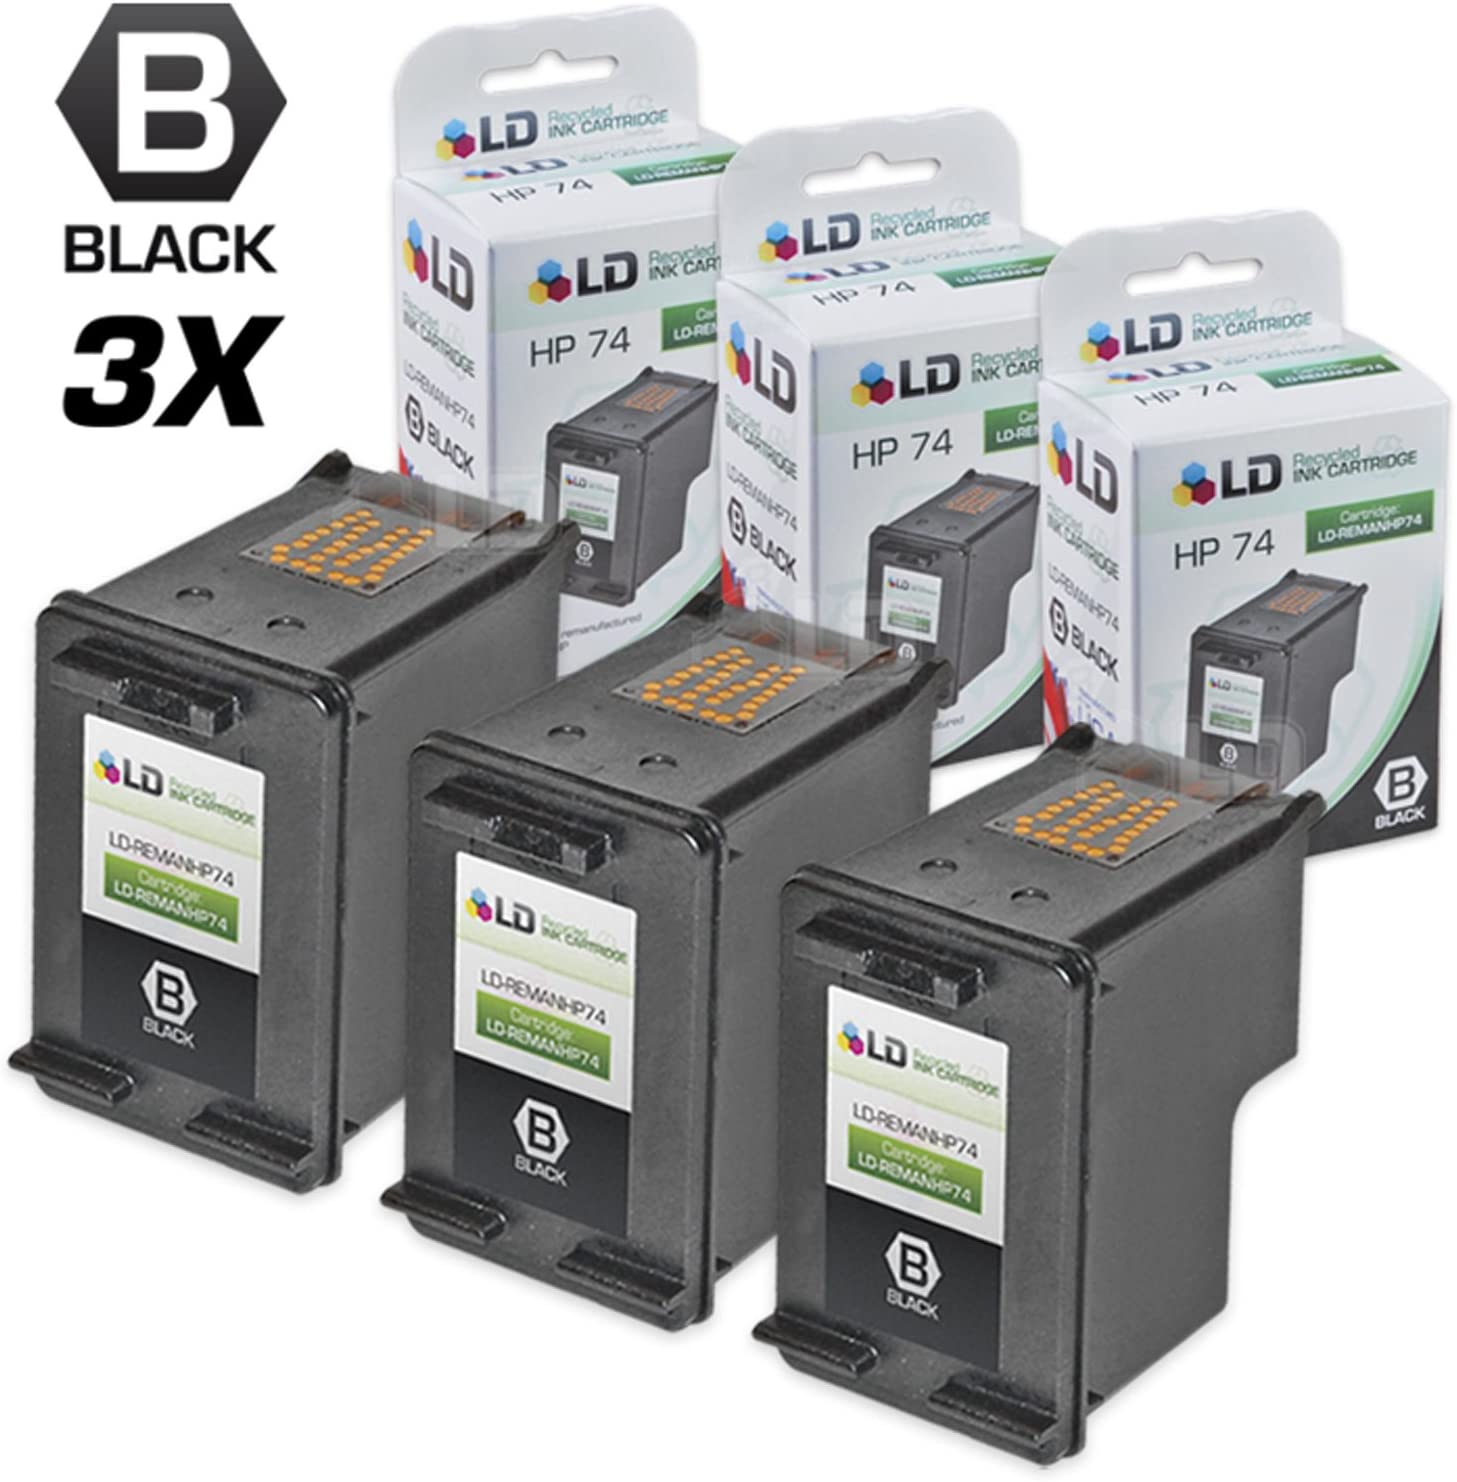 LD Remanufactured Ink Cartridge Replacement for HP 74 CB335WN (Black, 3-Pack)